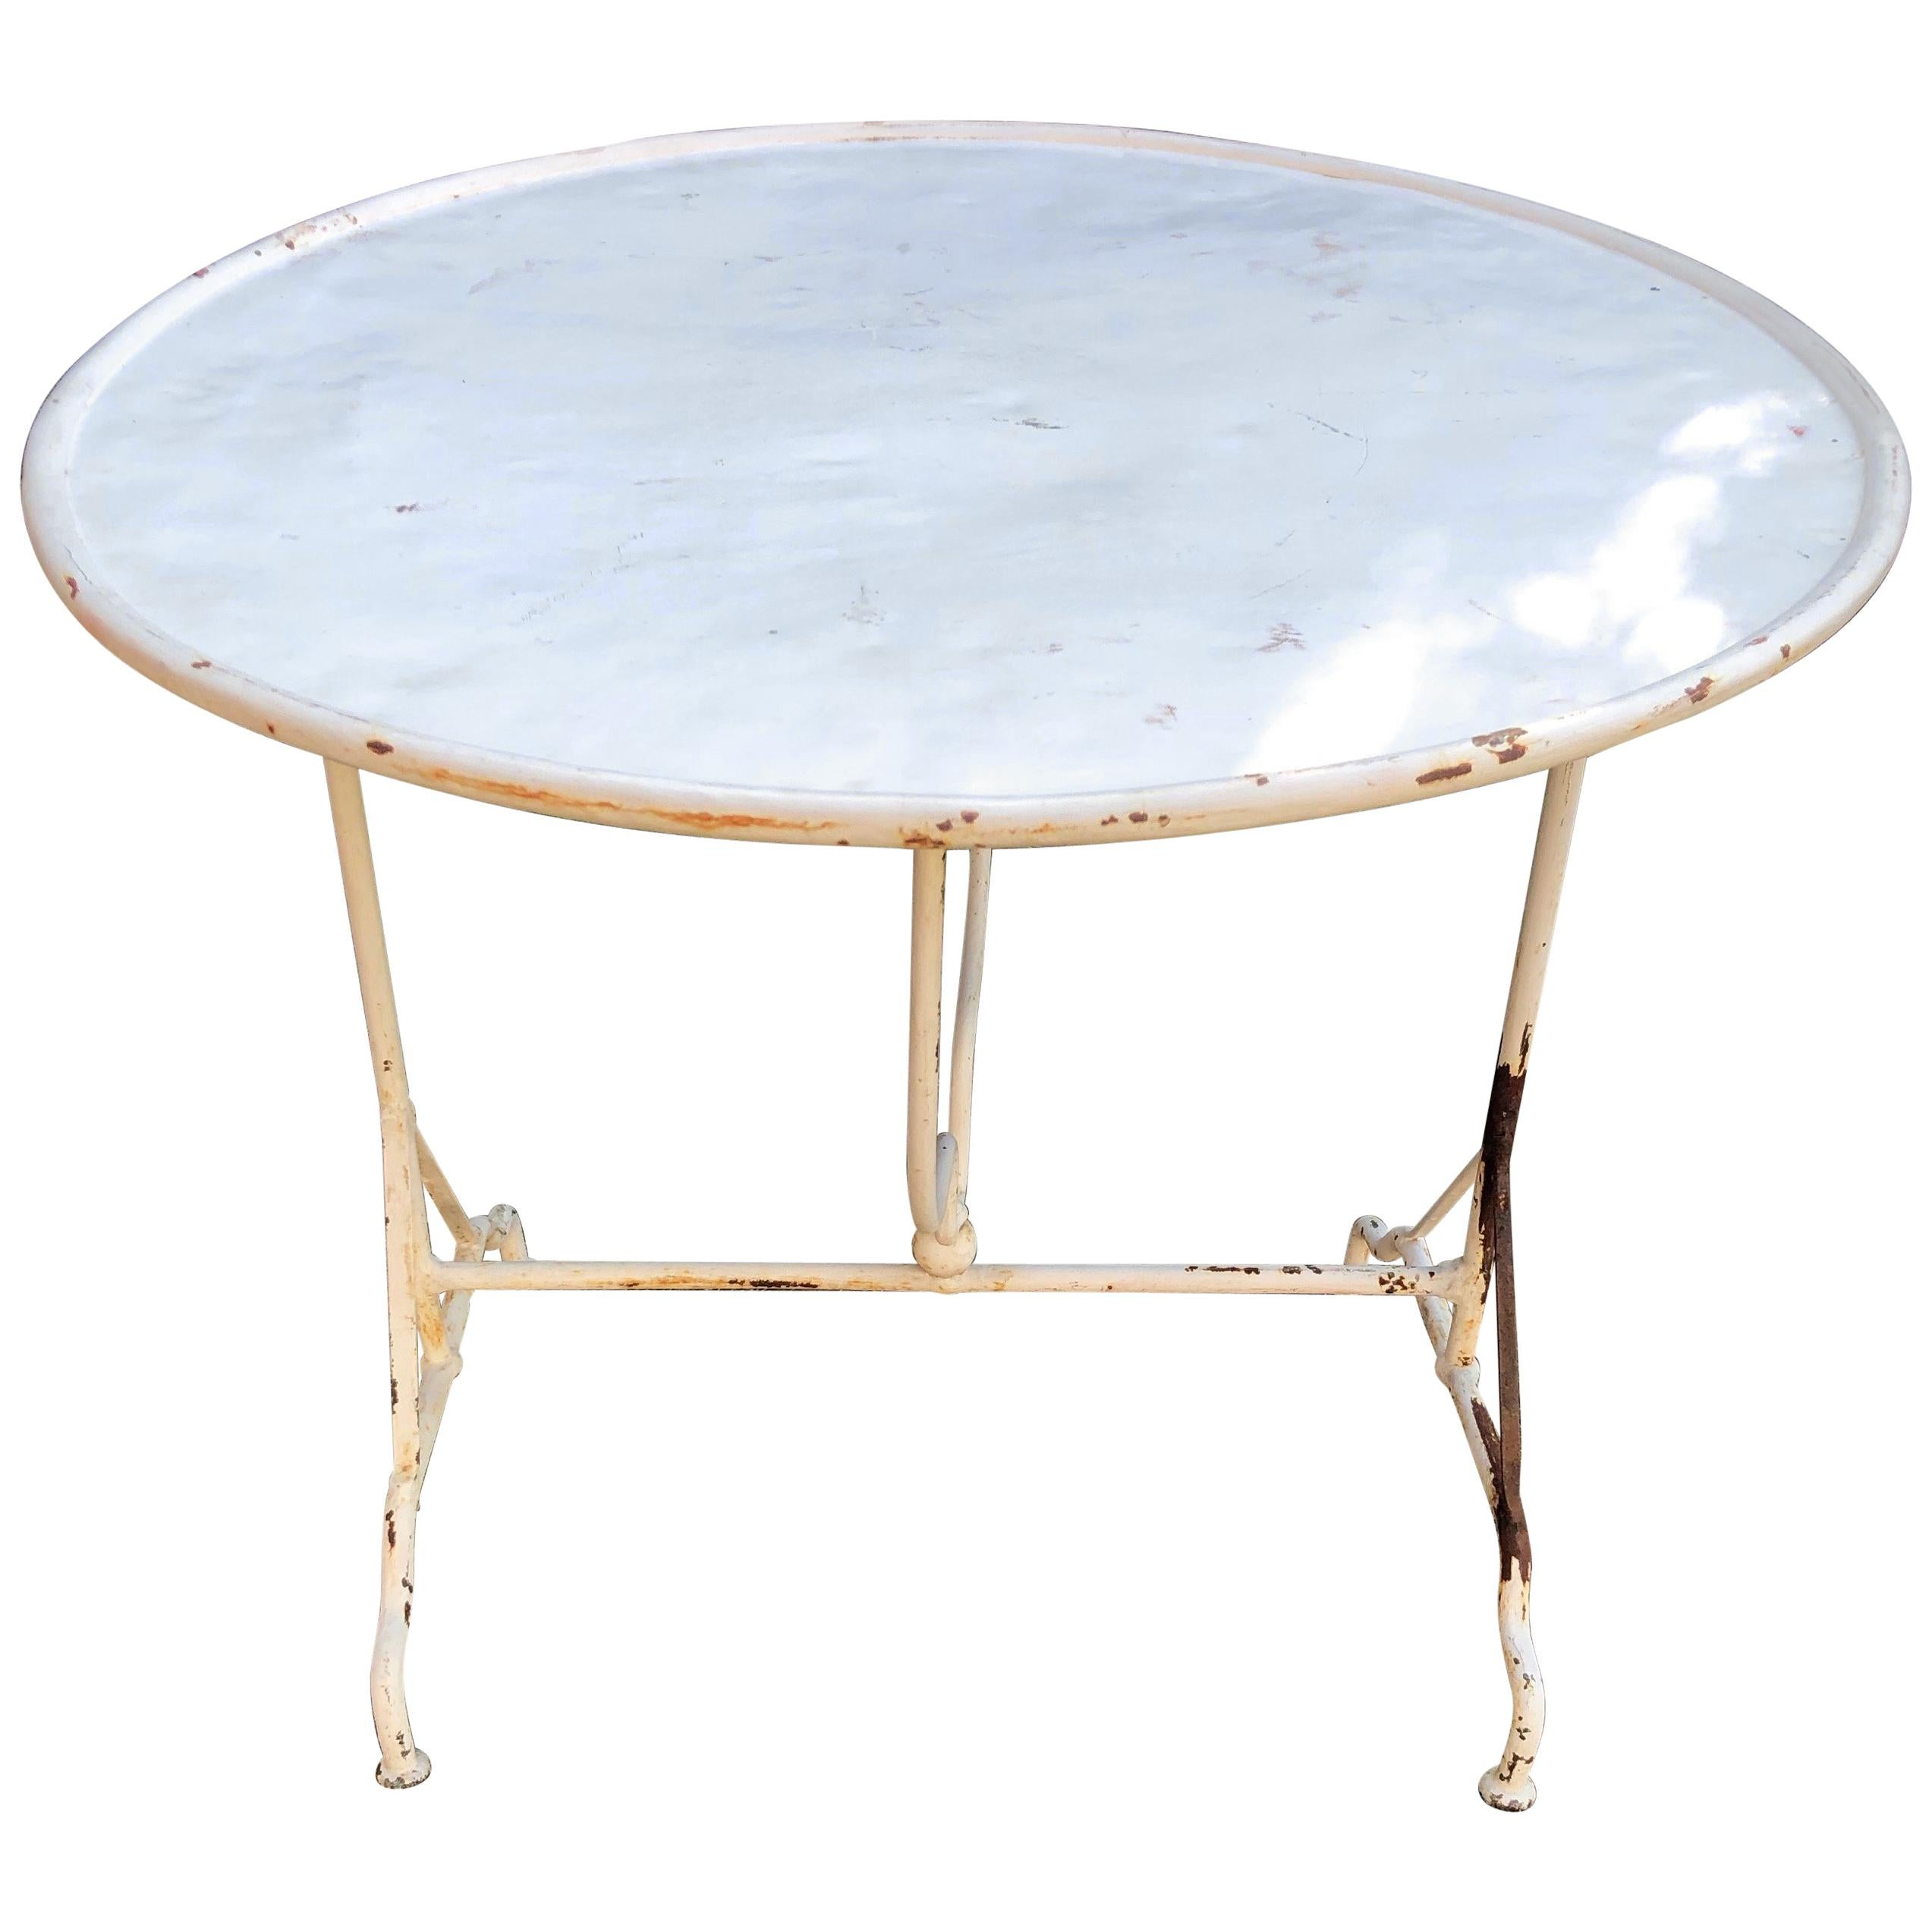 Super French Art Nouveau Cast Iron And Marble Topped Table Inzonedesignstudio Interior Chair Design Inzonedesignstudiocom